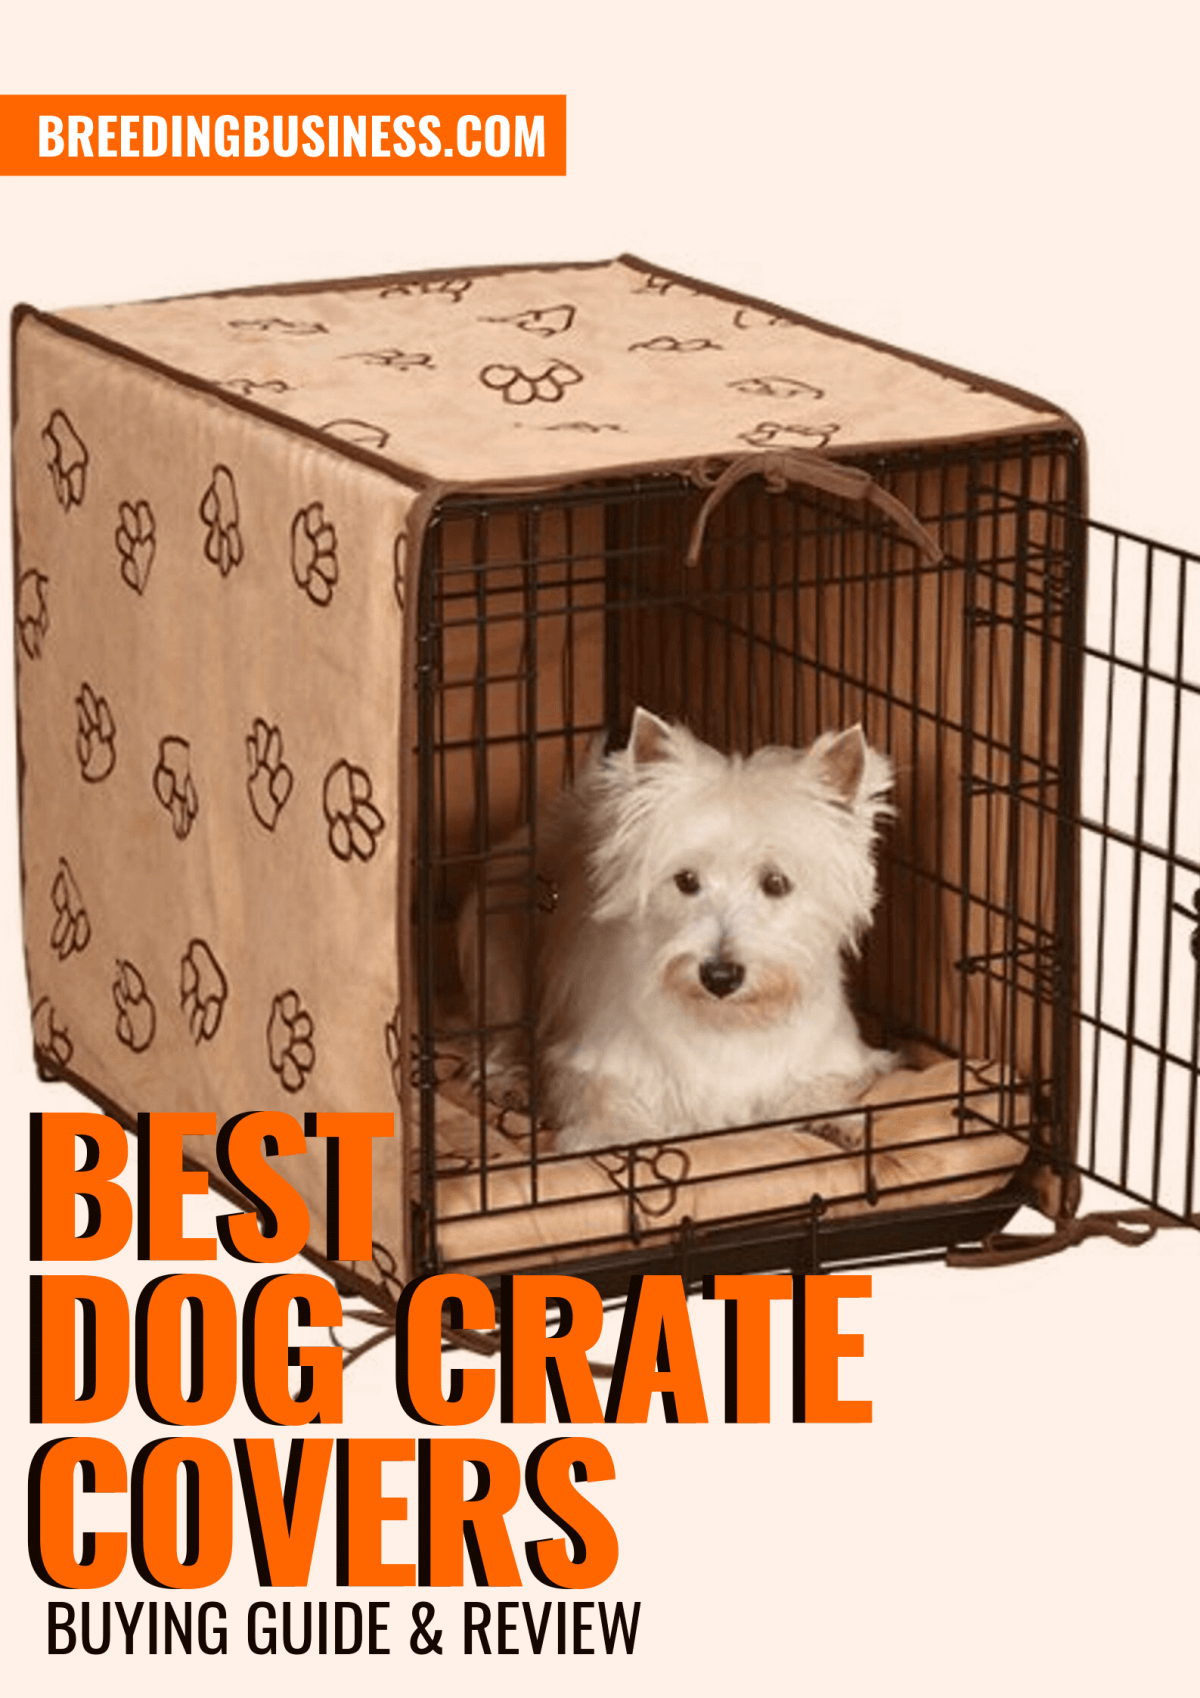 Top Dog Crate Covers with Buying Guide